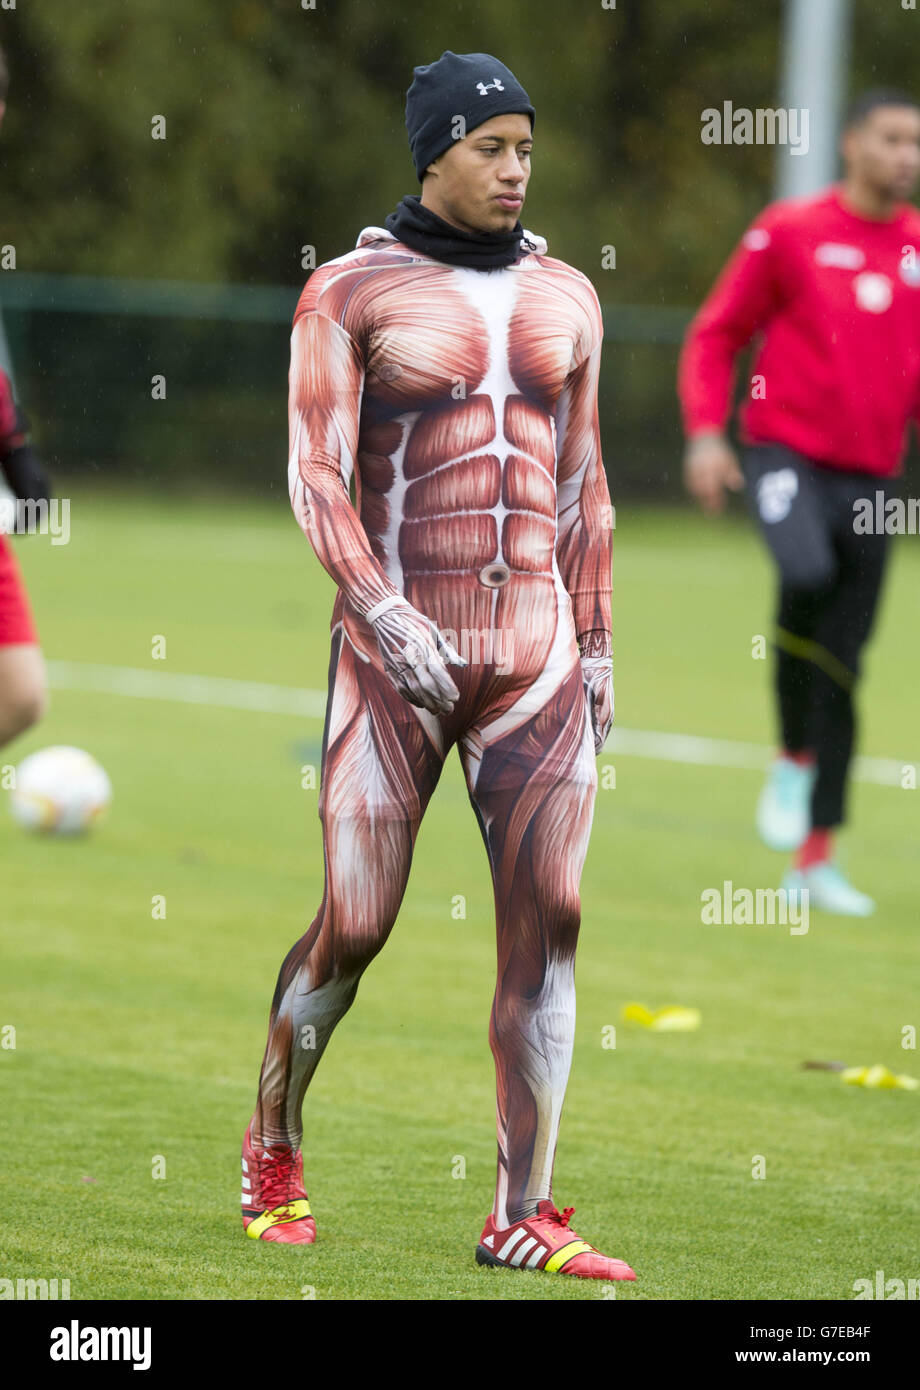 Soccer - Partick Thistle Training Session - Lochinch - Stock Image